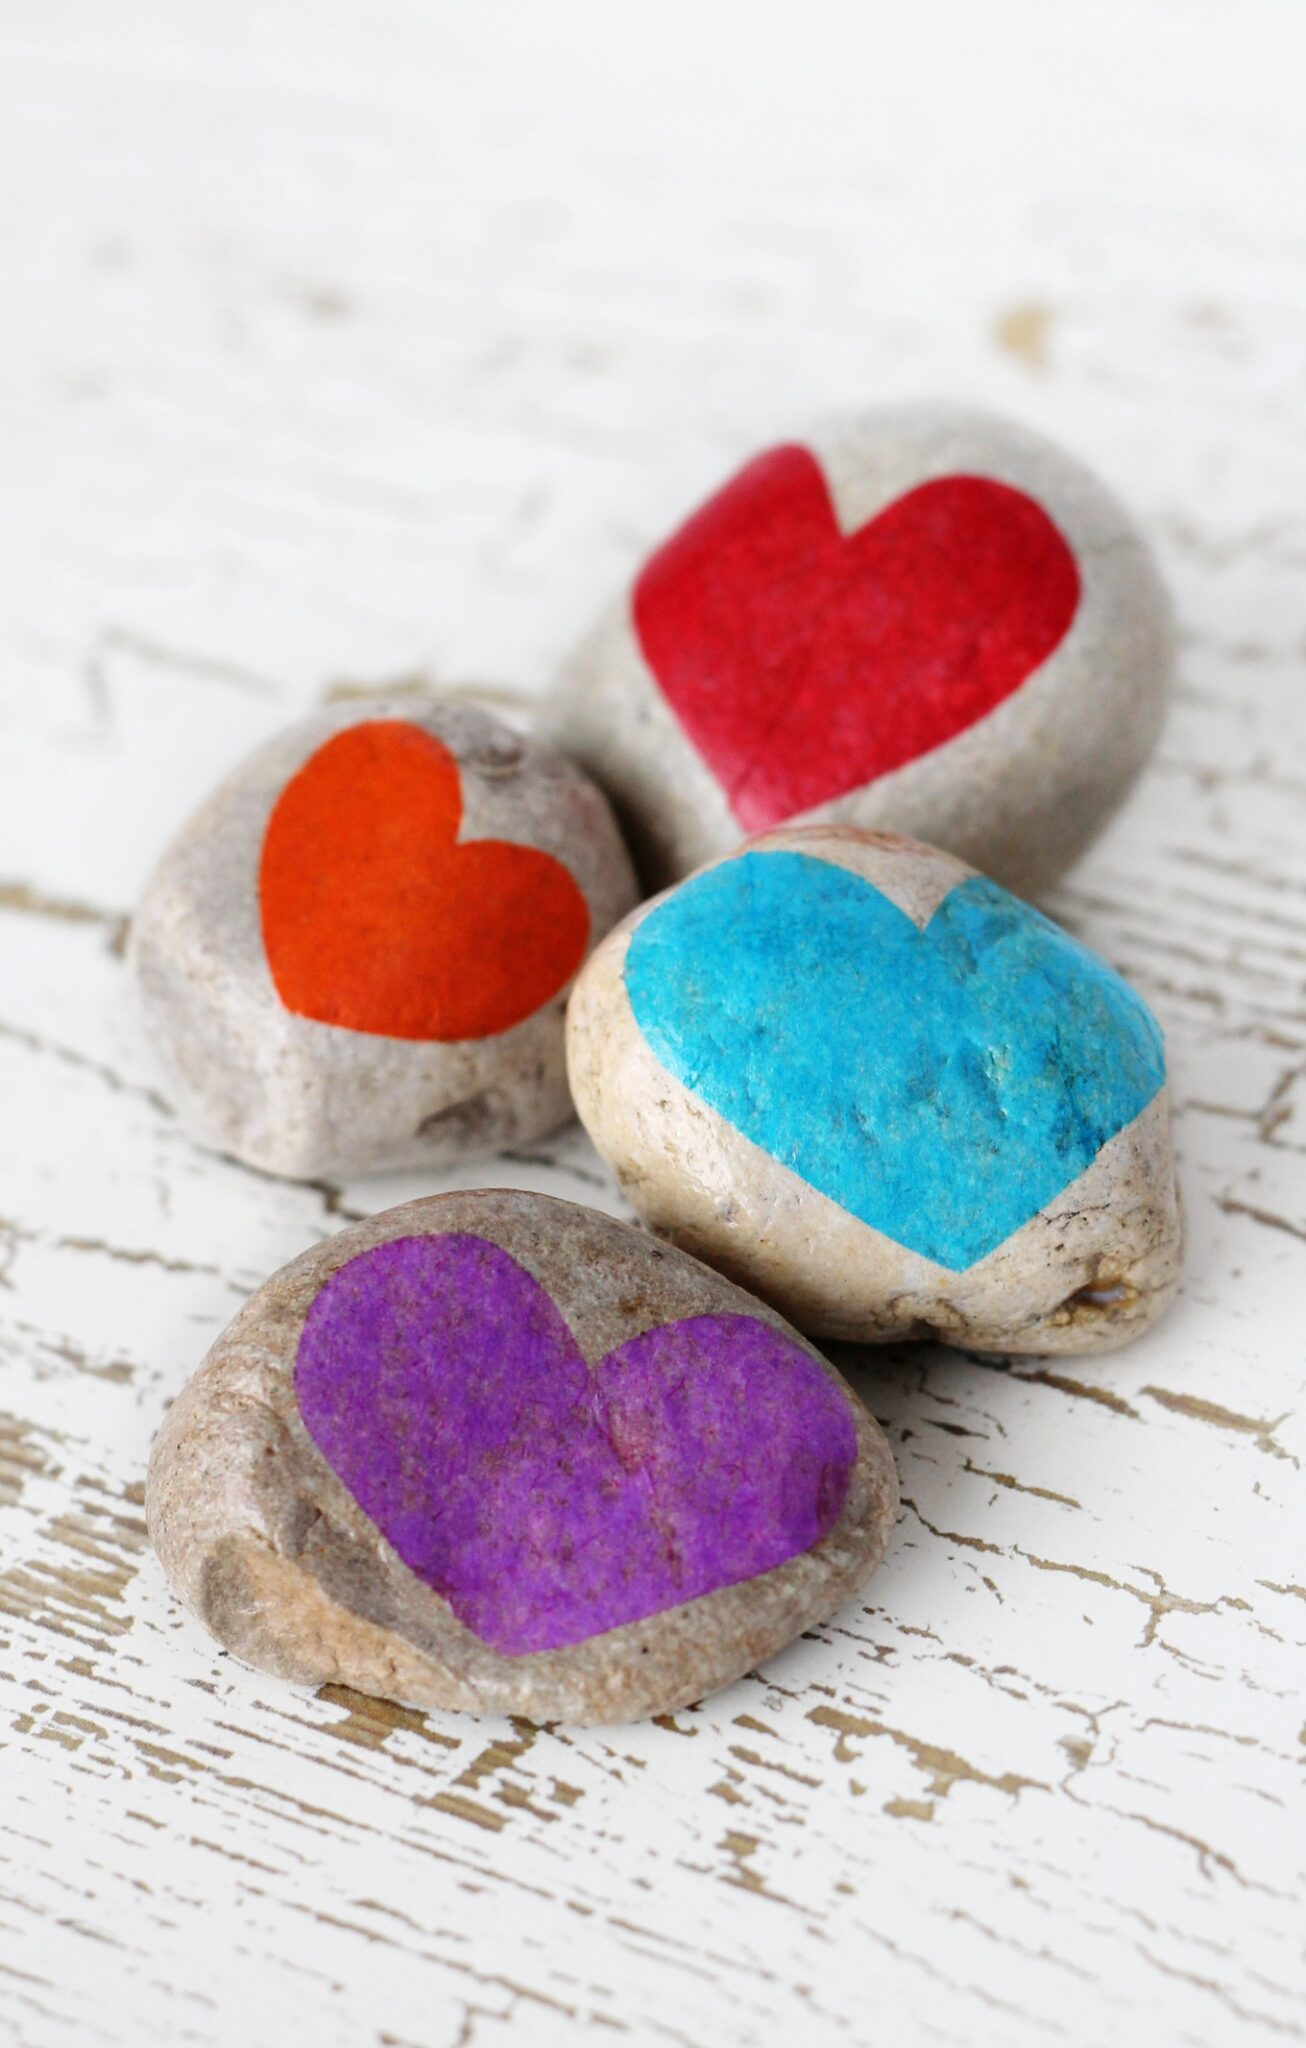 Learn how to use Gratitude Stones to cultivate a sense of gratitude, an important social-emotional skill that can increase happiness andimprove health.